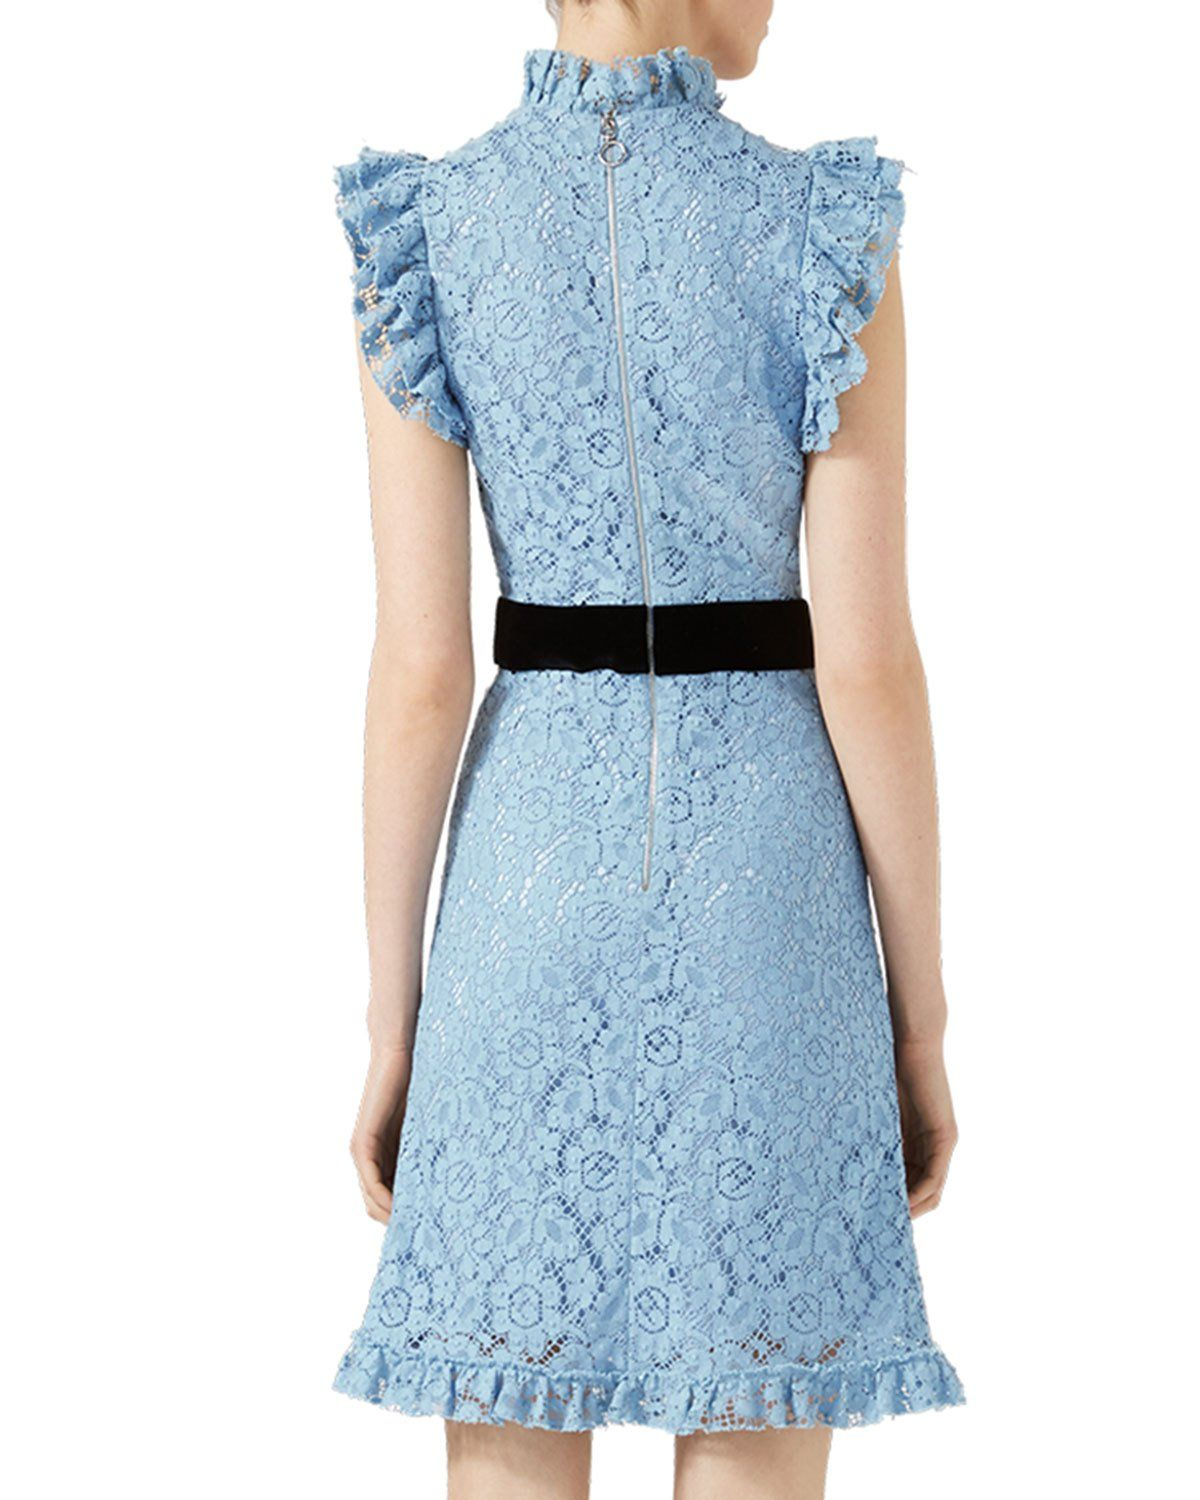 98facad12 Gucci Embroidered Cluny Lace Dress, Light Blue | Neiman Marcus ...